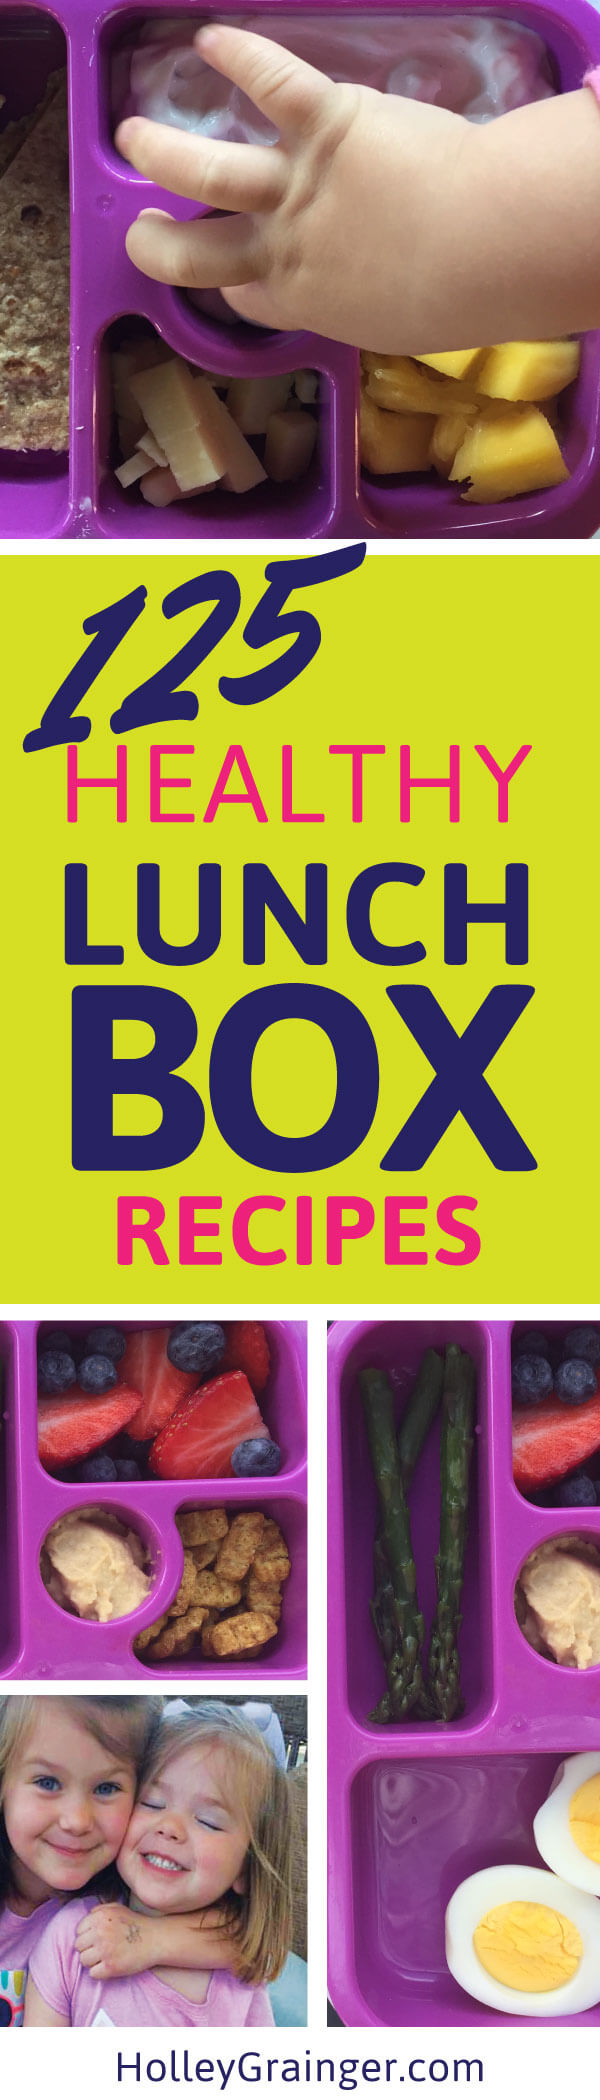 "Get the jump on the ""school lunch"" routine with 125 FREE easy-to-pack lunchbox ideas."